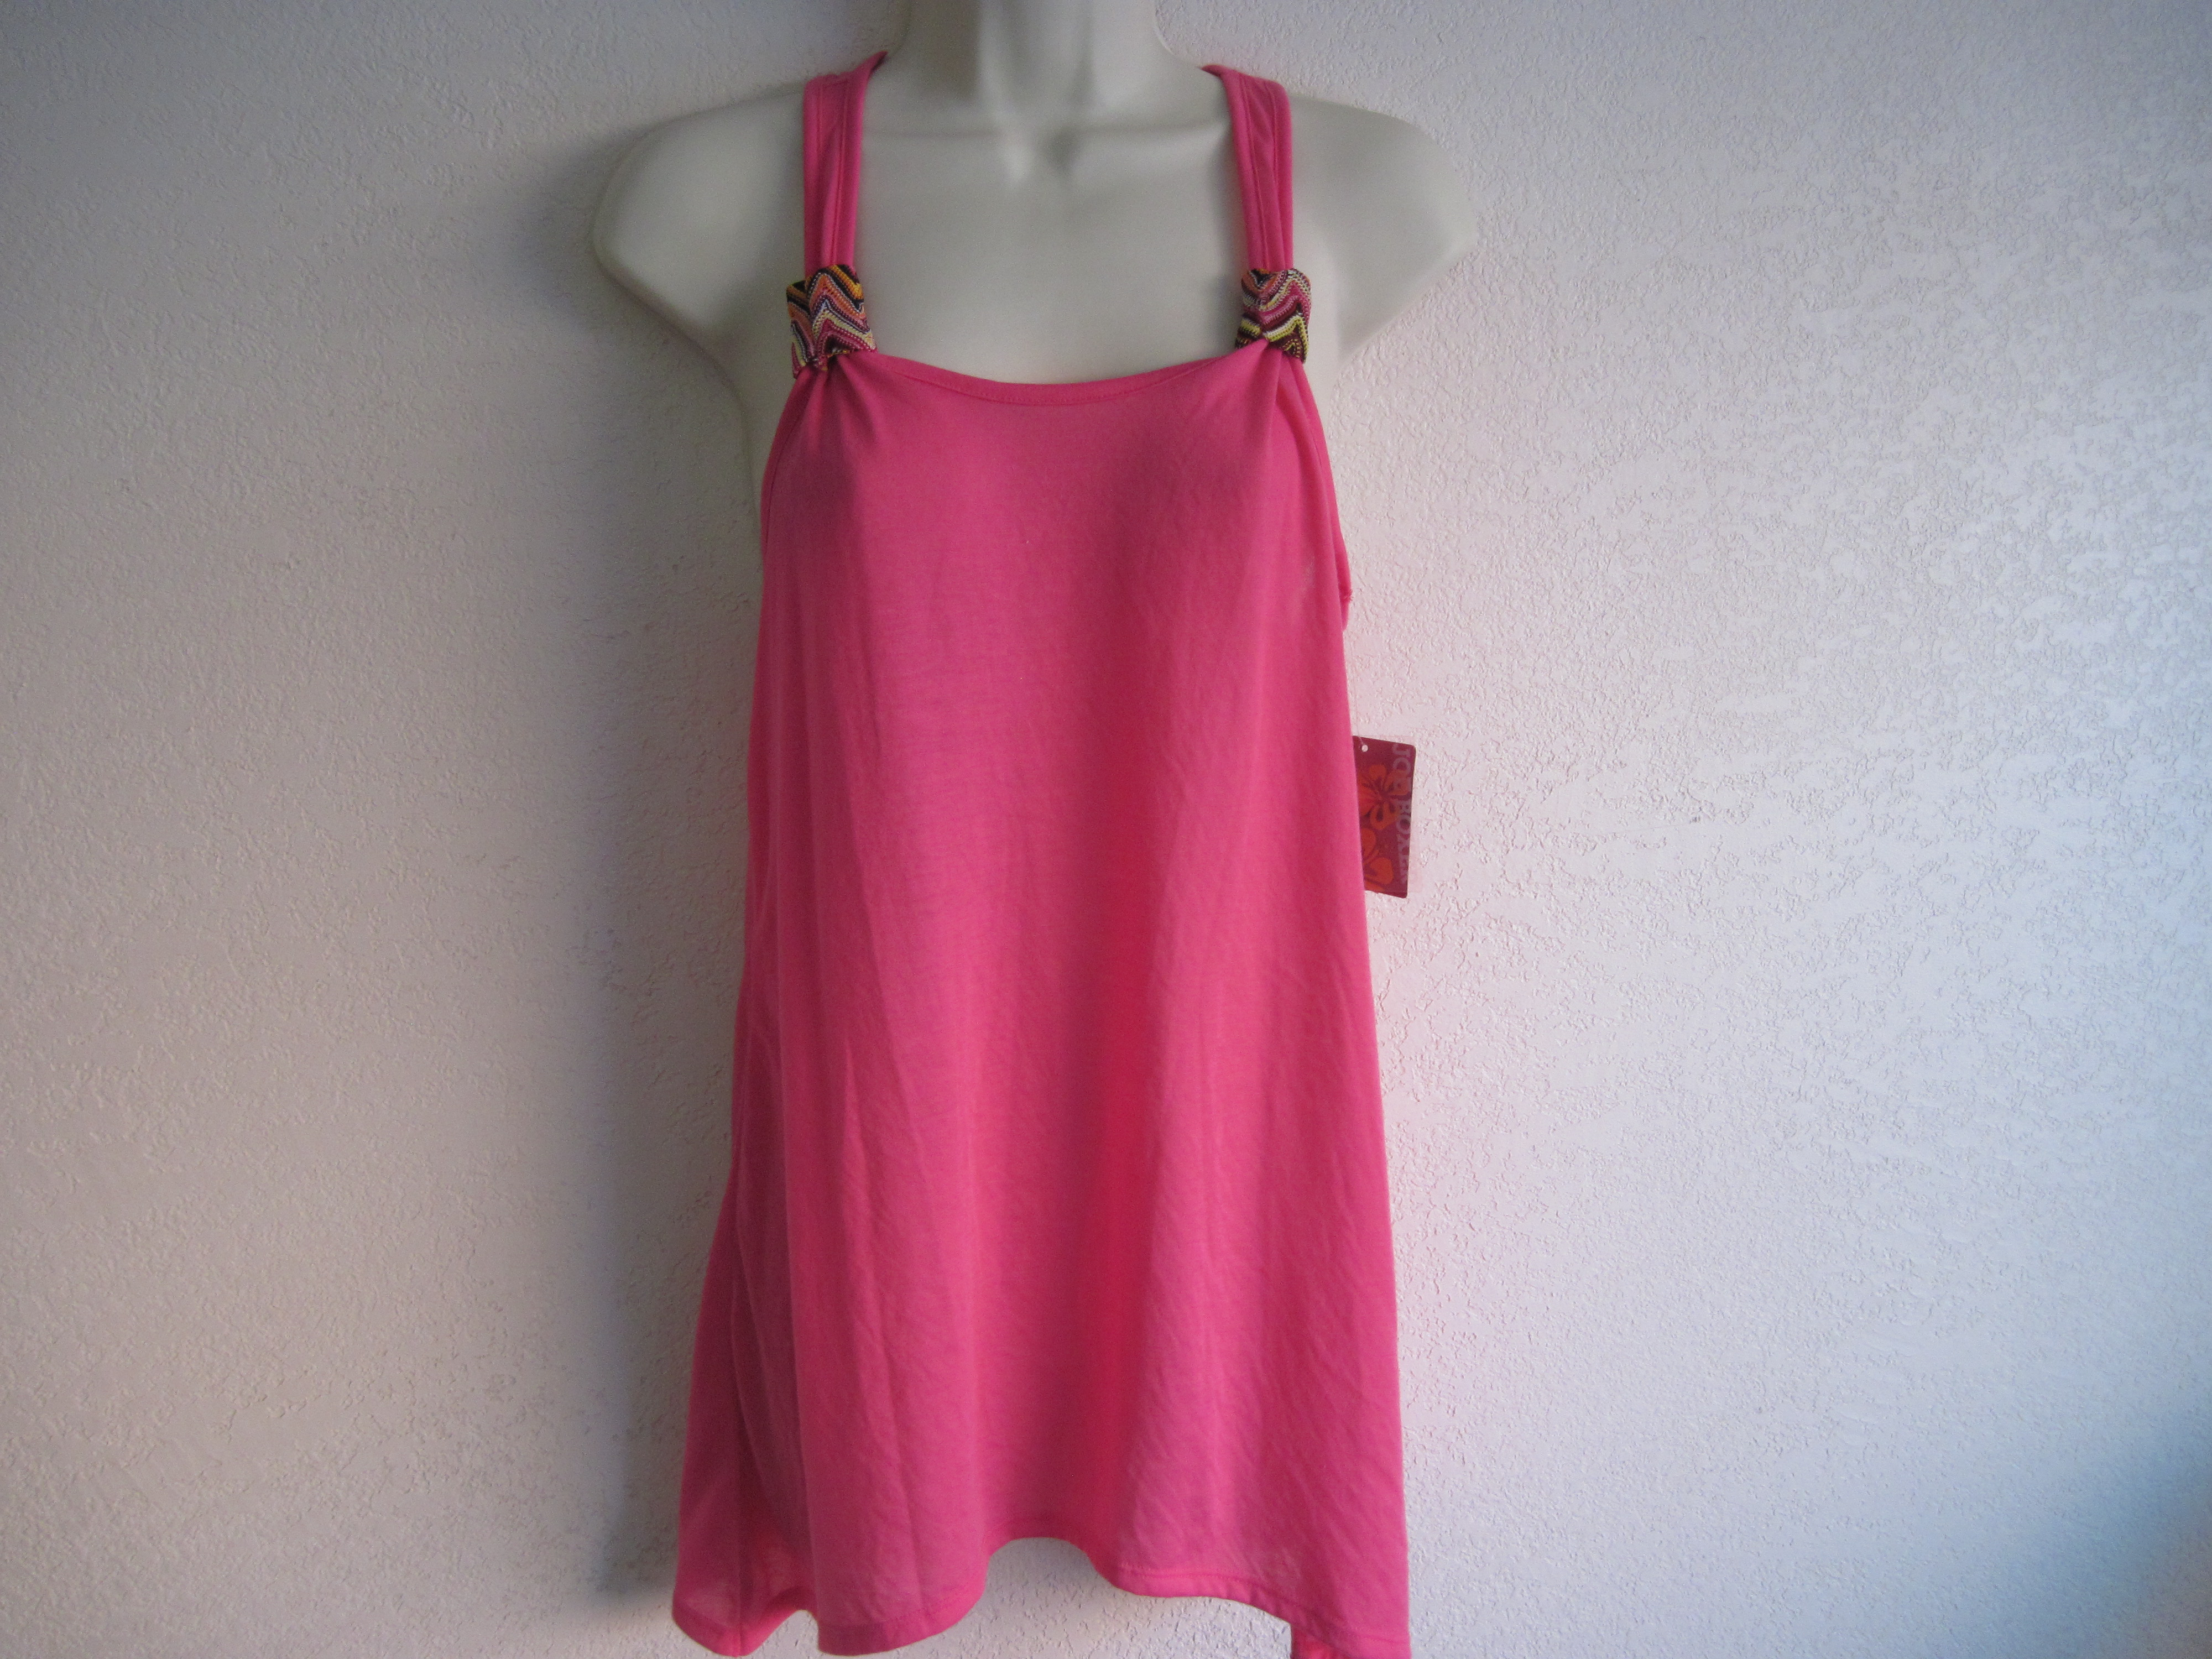 Joe Boxer Sz Small Juniors Ladies Cover-Up Tank (hot pink)